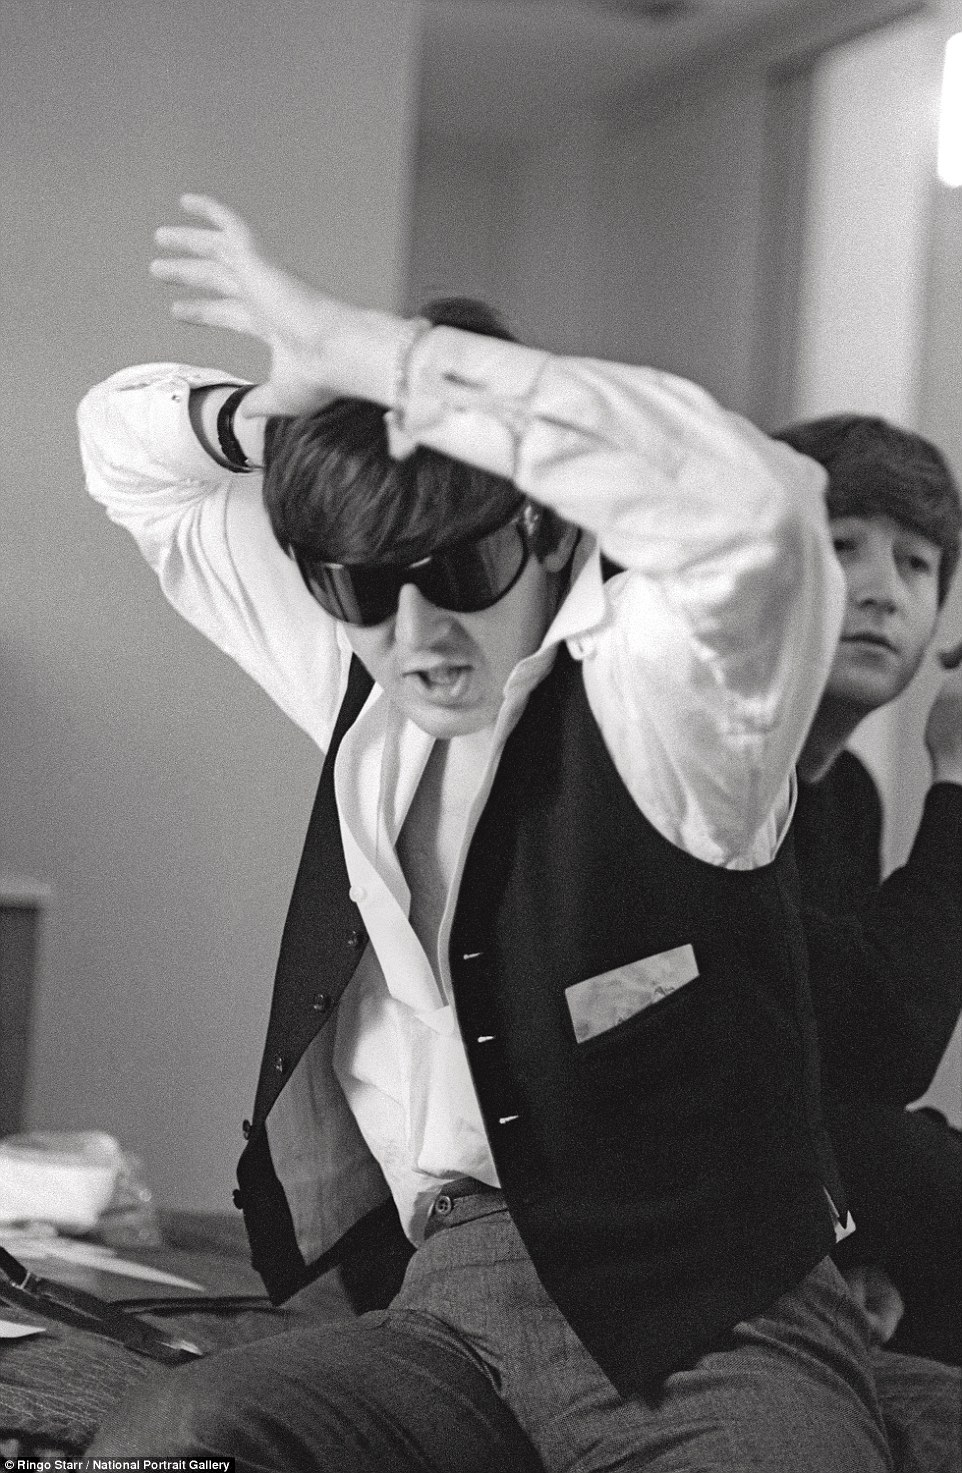 Dancing around: Paul McCartney does a jig on a hotel bed in a photo taken in New York in February 1964